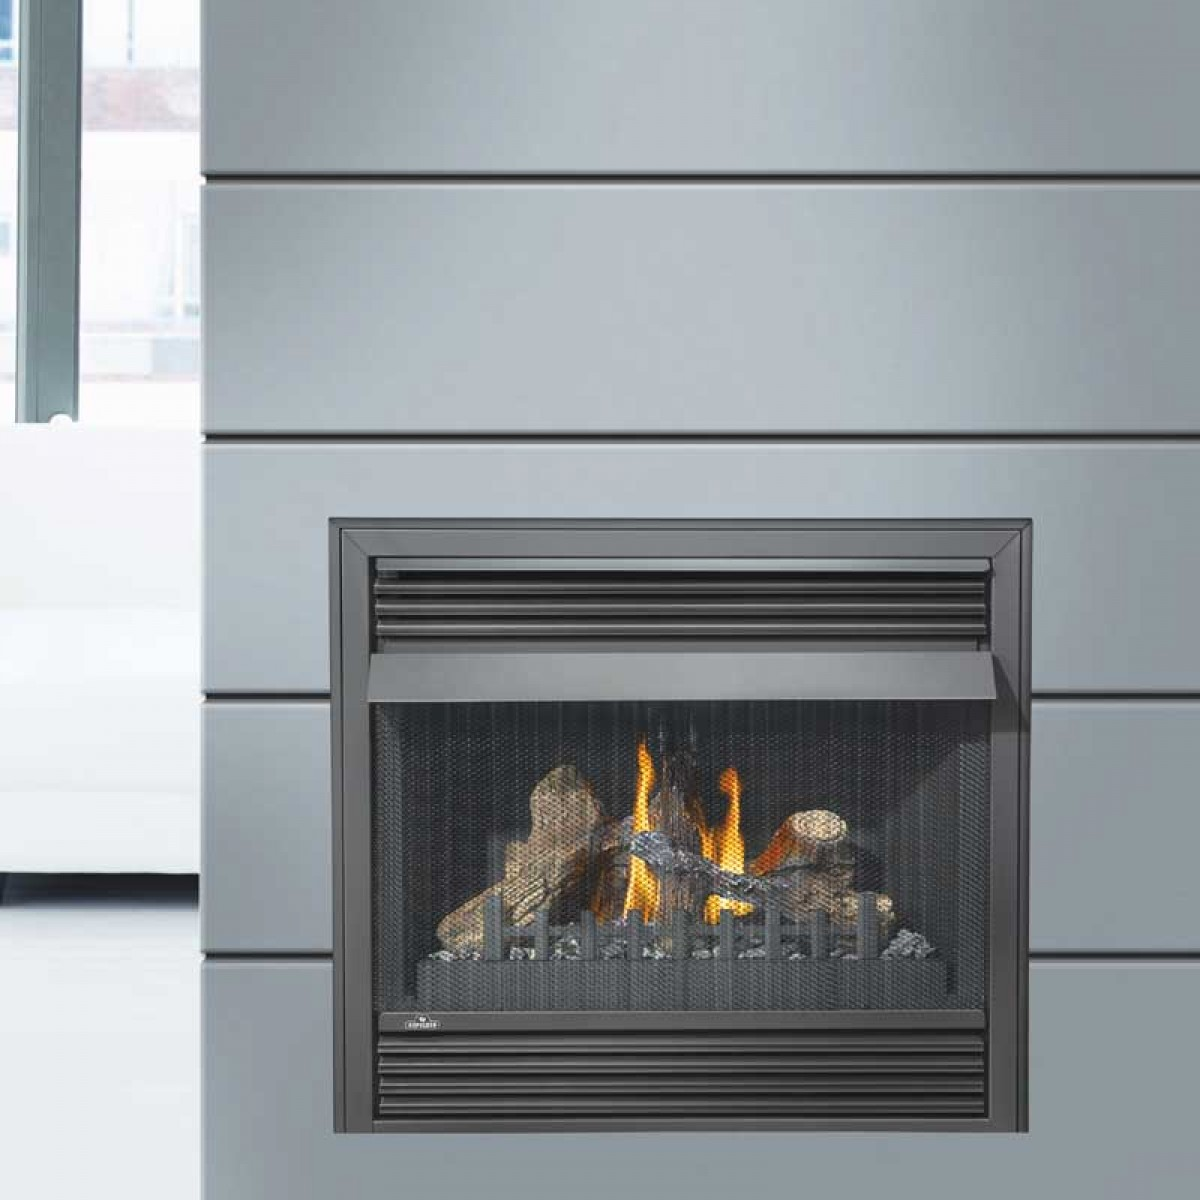 Napoleon GVF36 2N Vent free Natural gas fireplace at